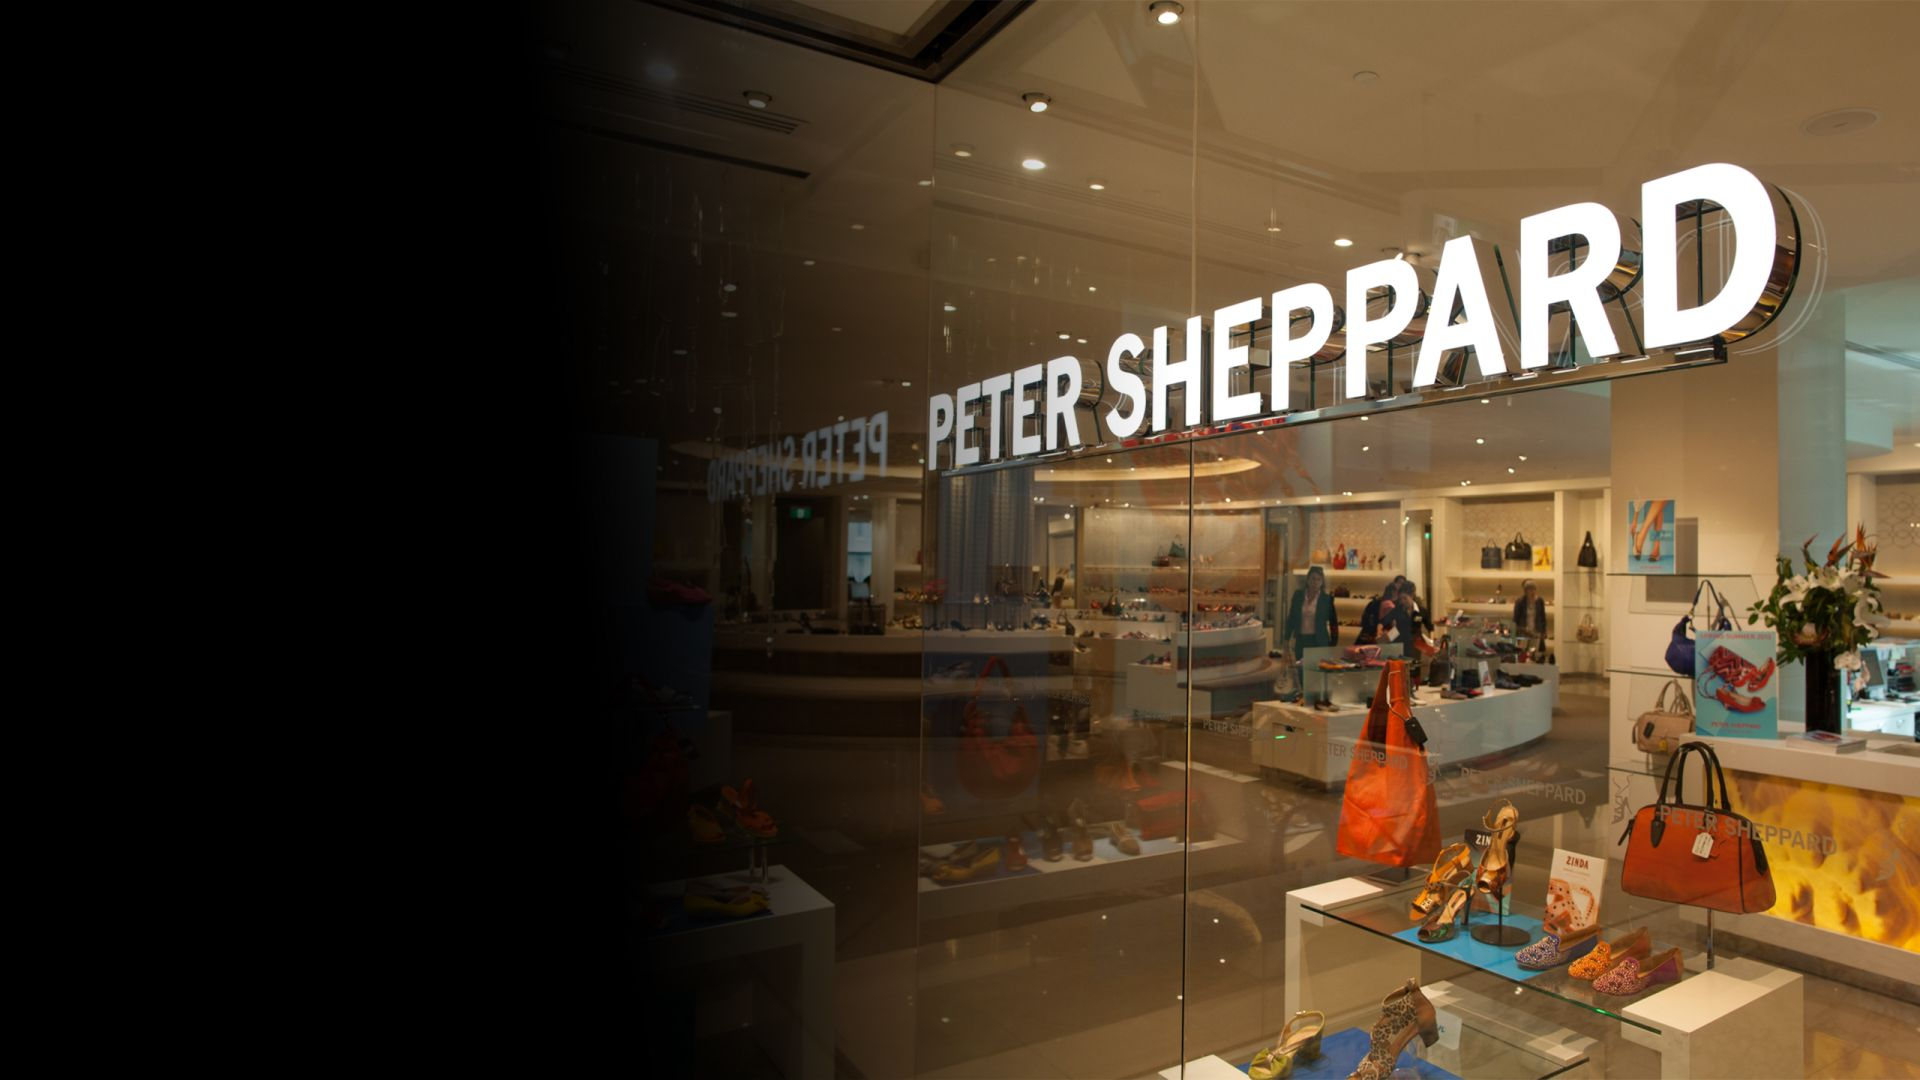 Peter Sheppard illuminated signage